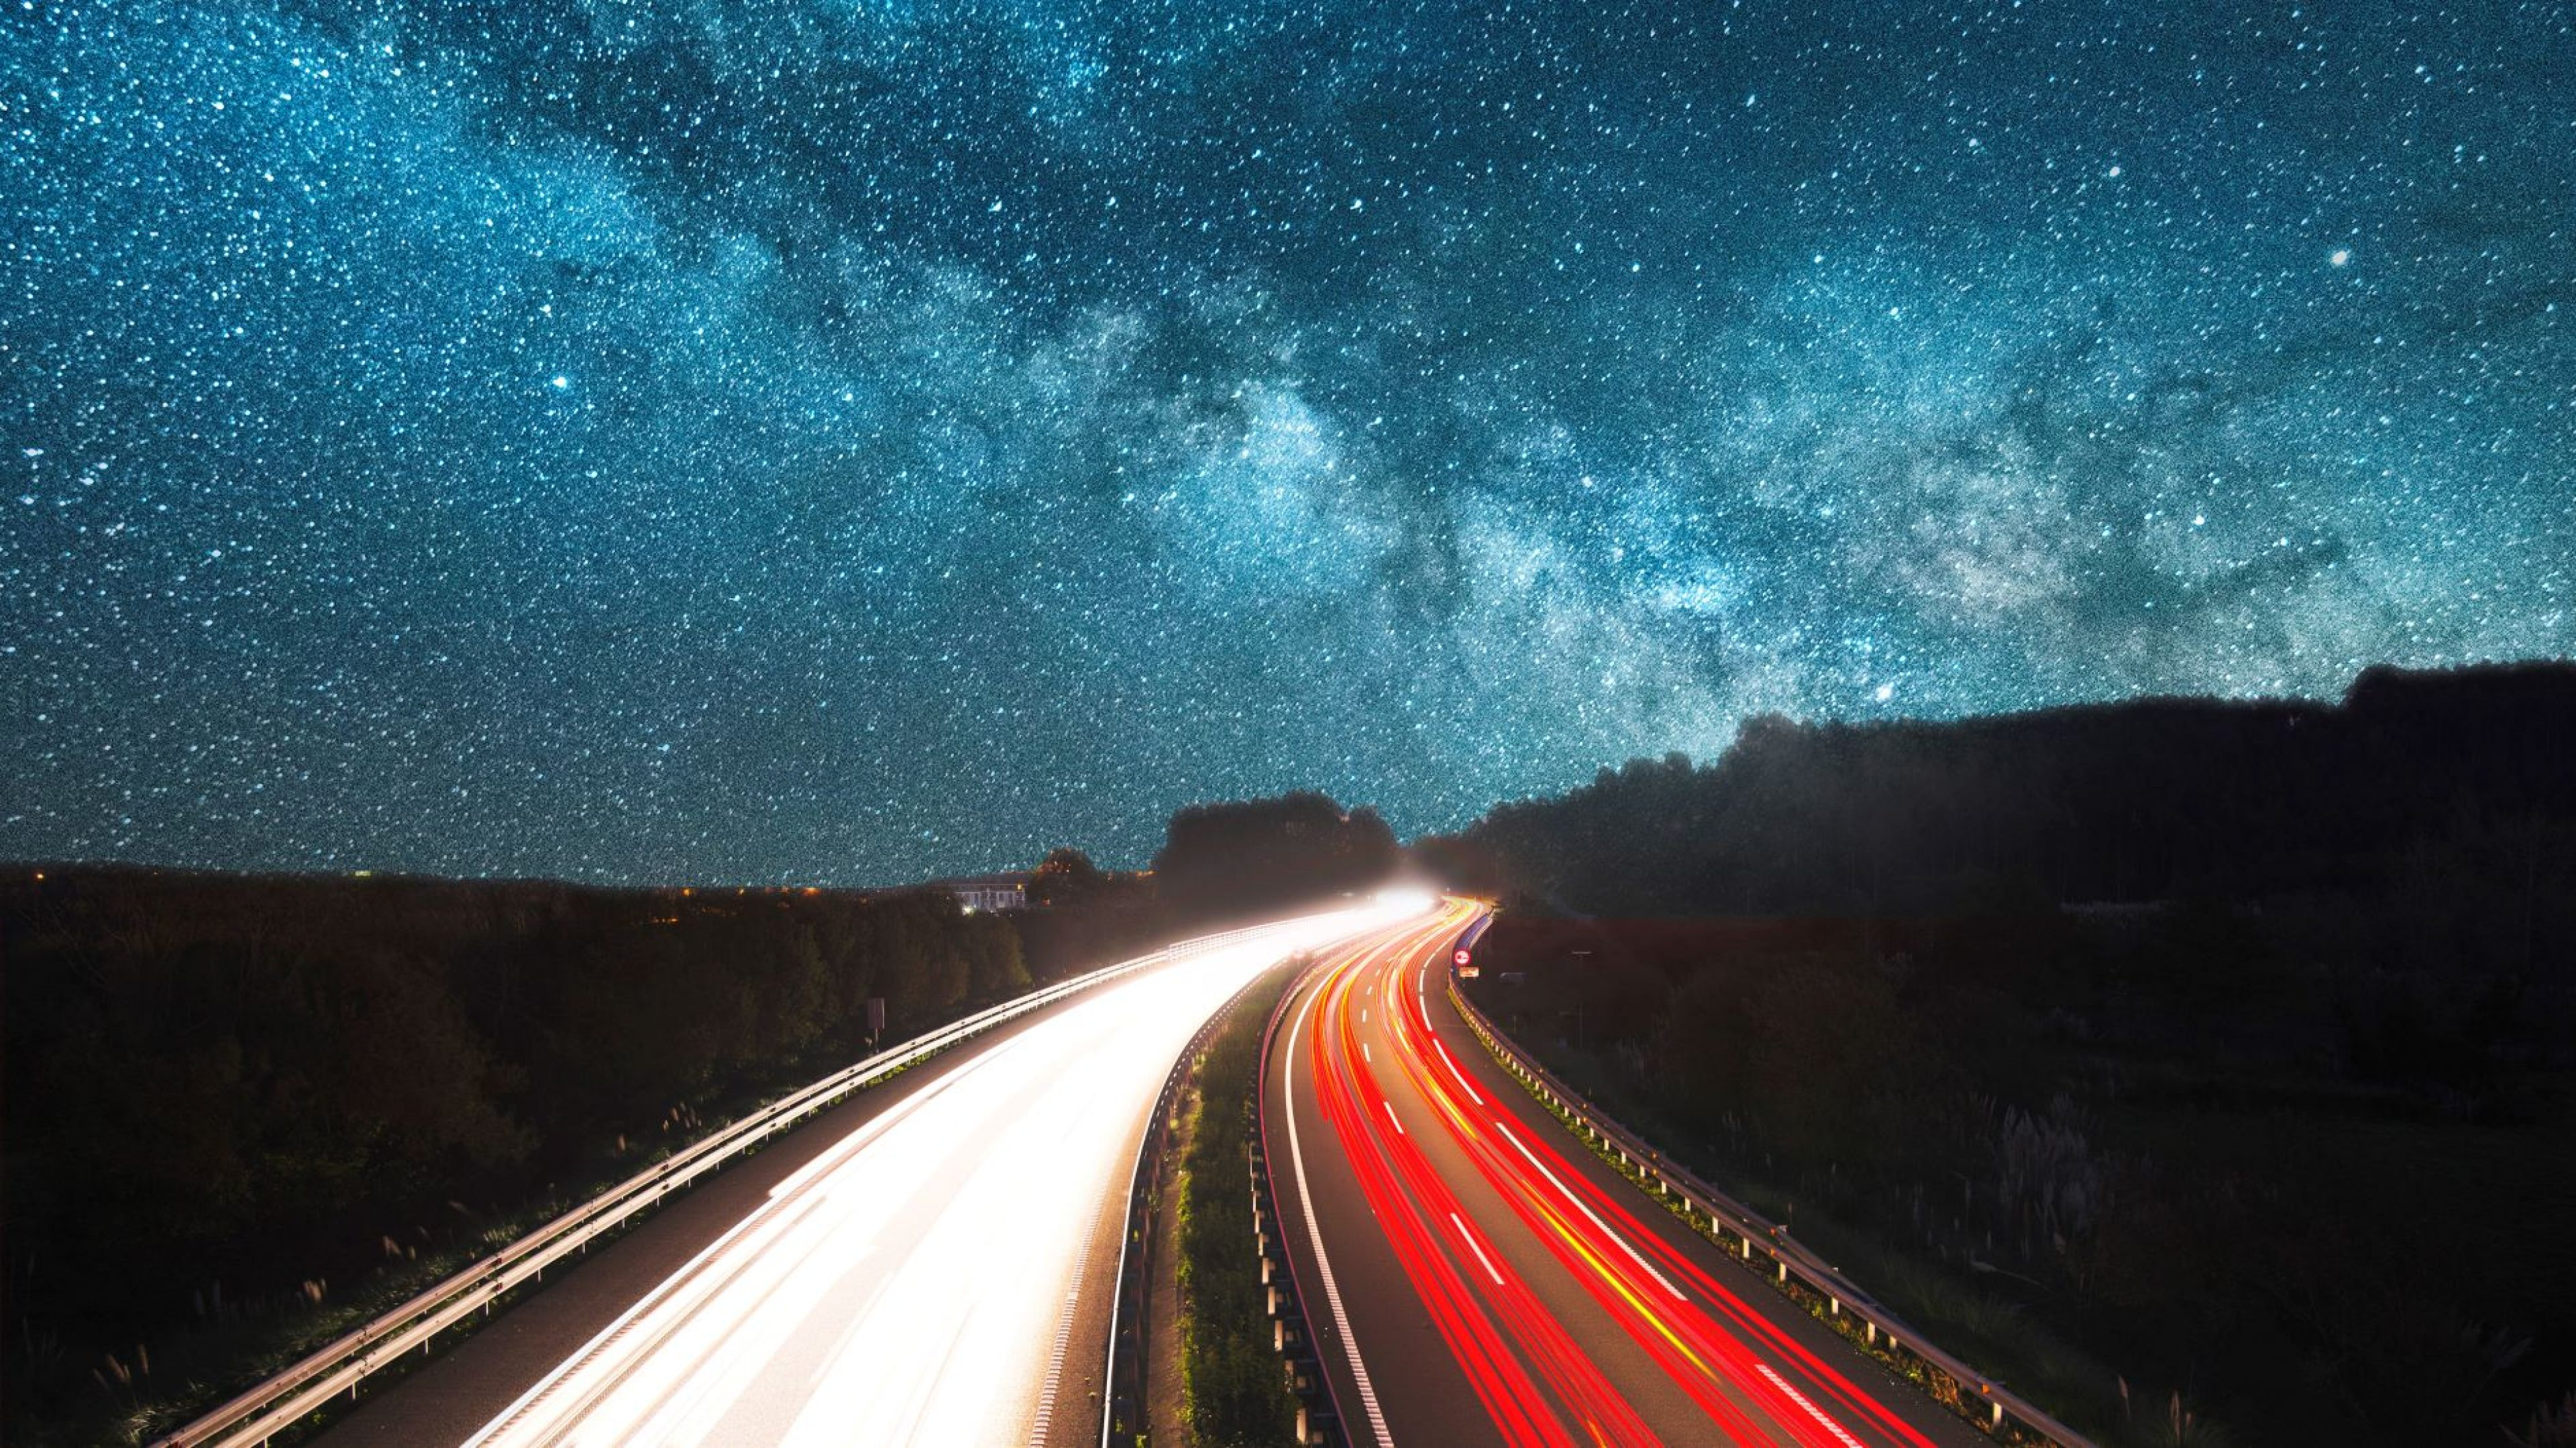 Time-lapse night-time view of a motorway beneath starry skies